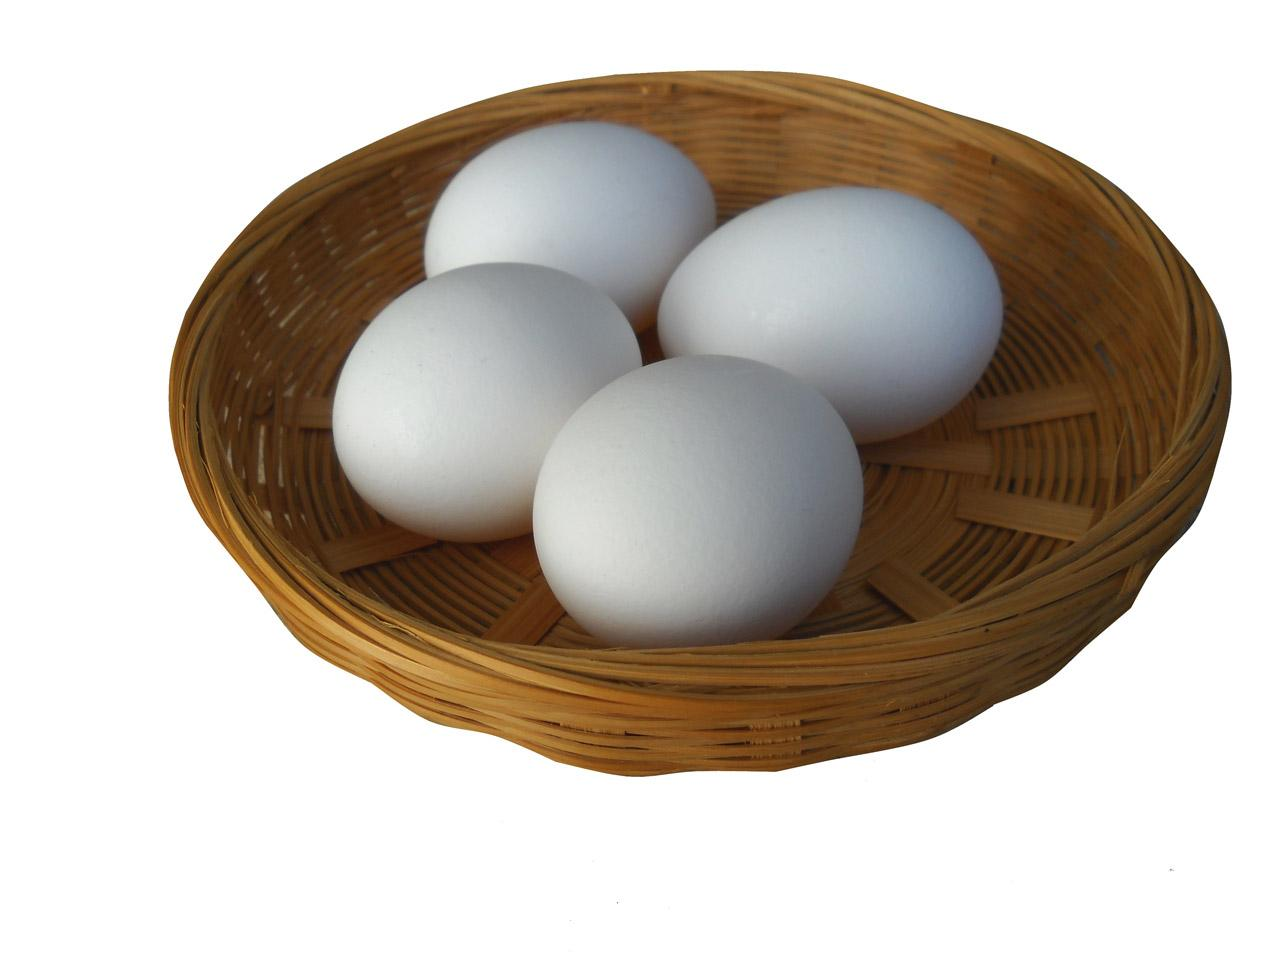 Four eggs in a shallow wicker basket